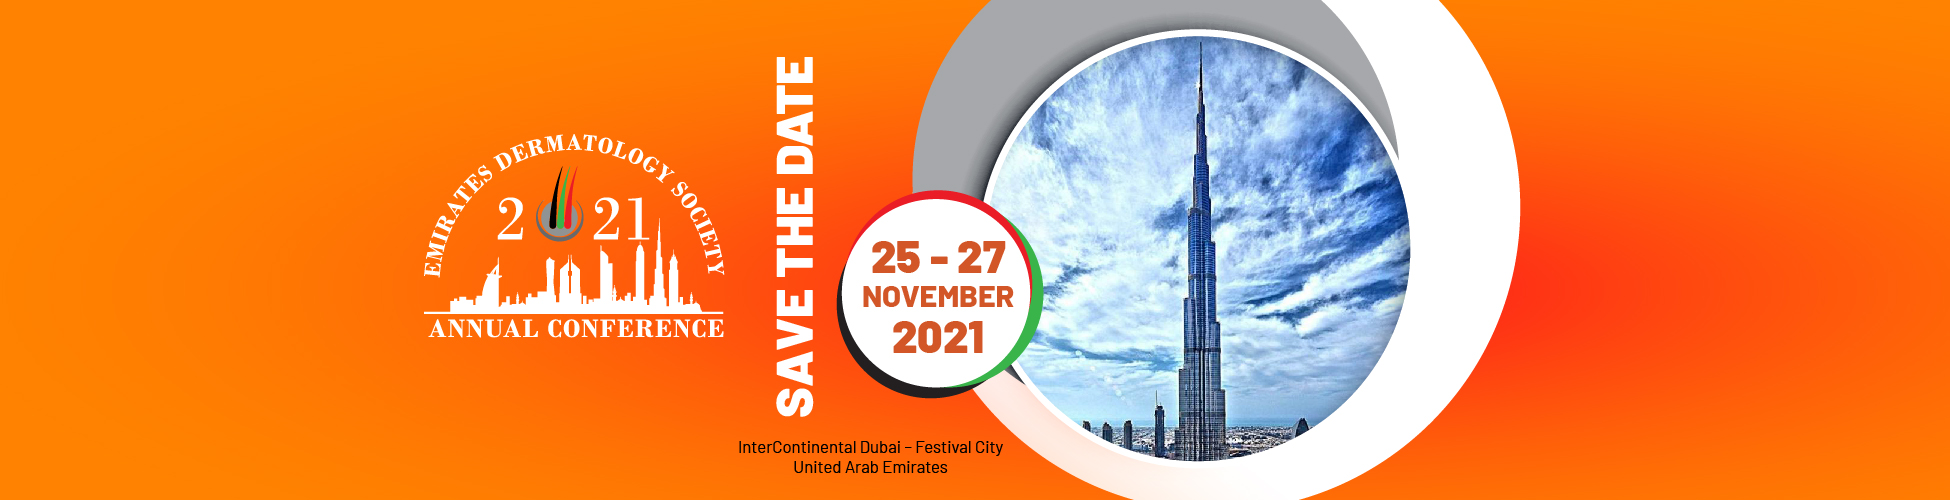 Emirates Dermatology Society Conference 2021